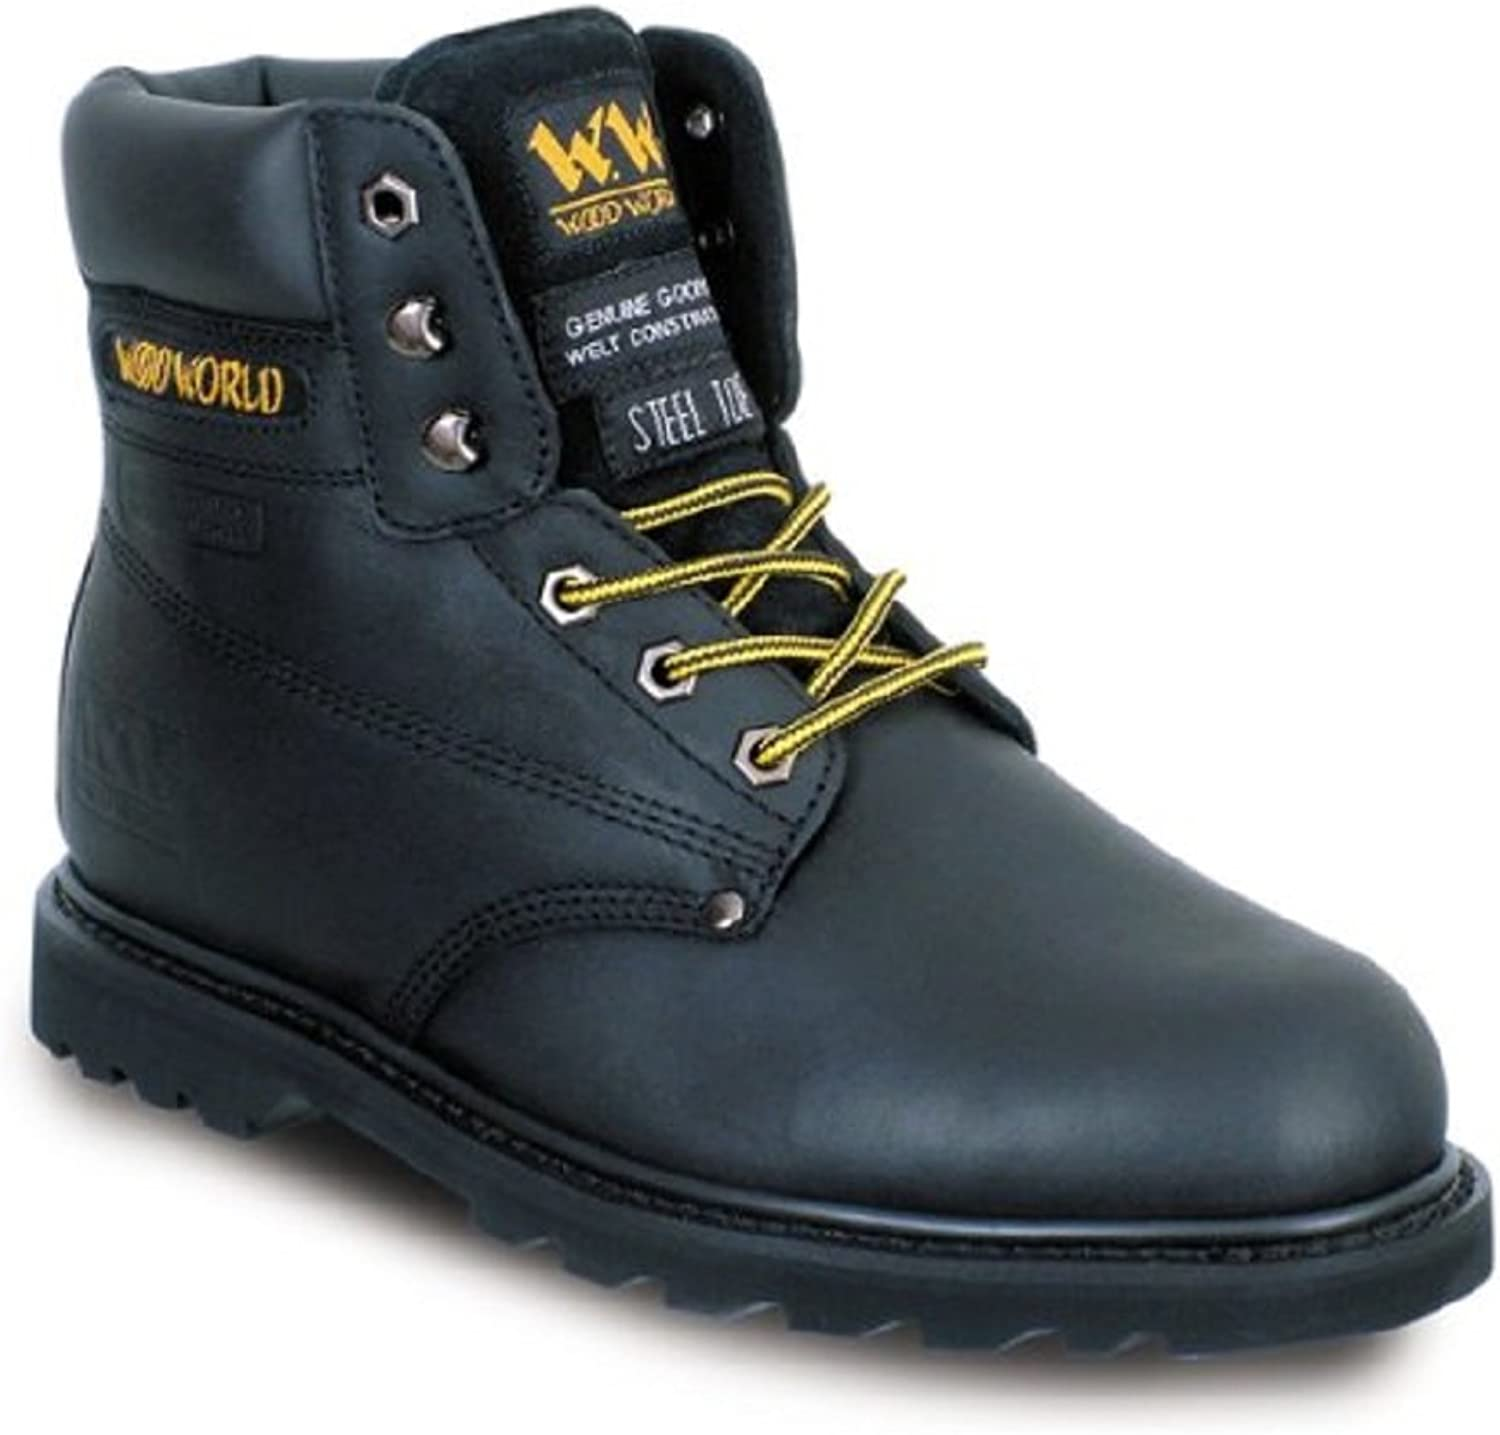 Wood World Unisex Adult 2HP Safety Boots